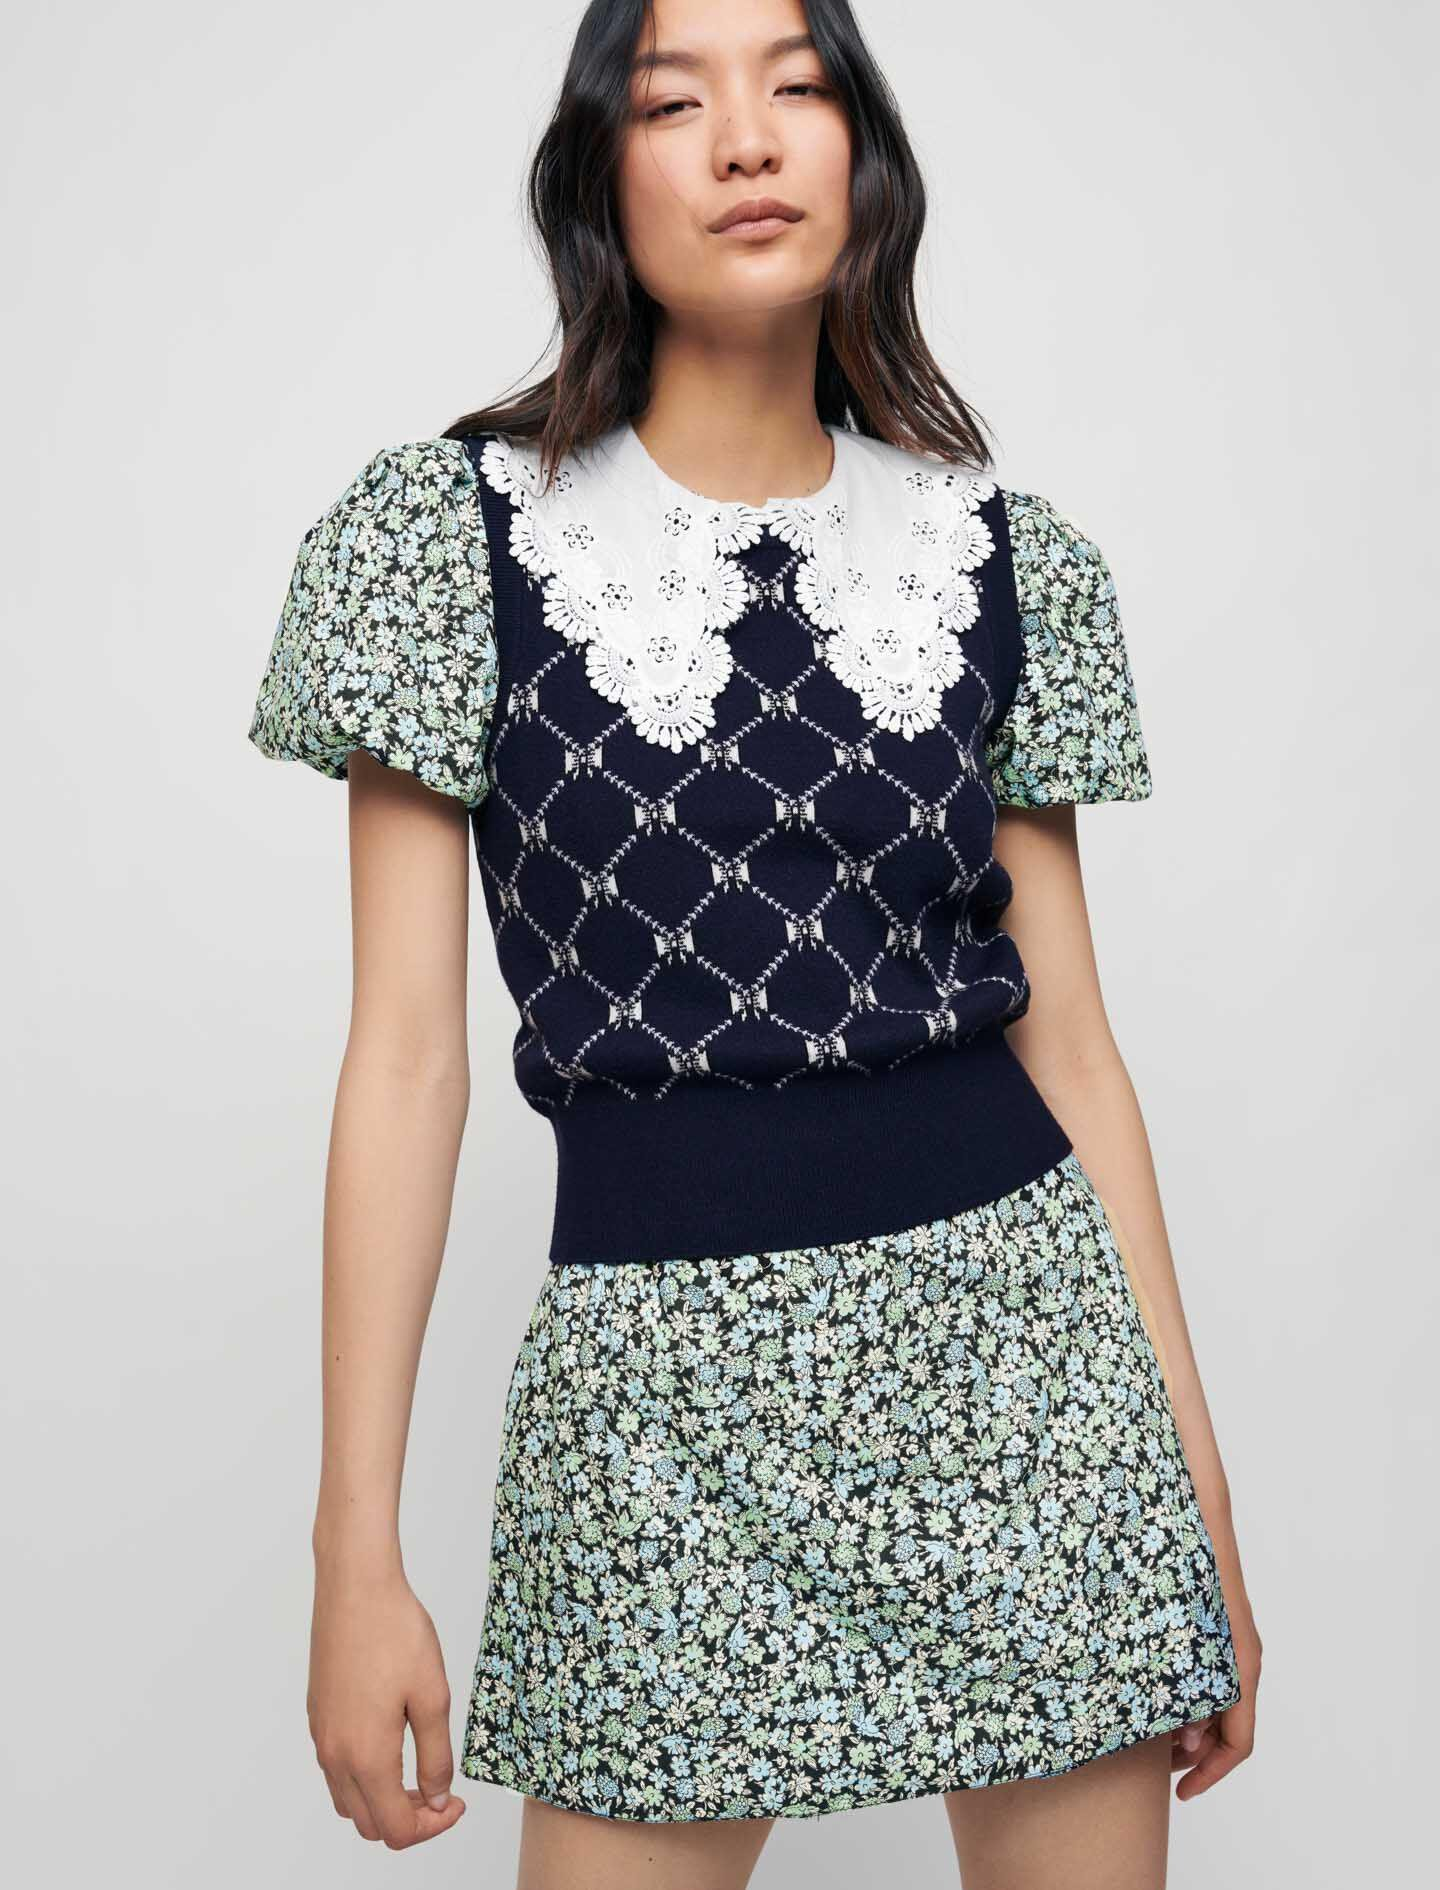 SLEEVELESS JACQUARD SWEATER WITH BOWS